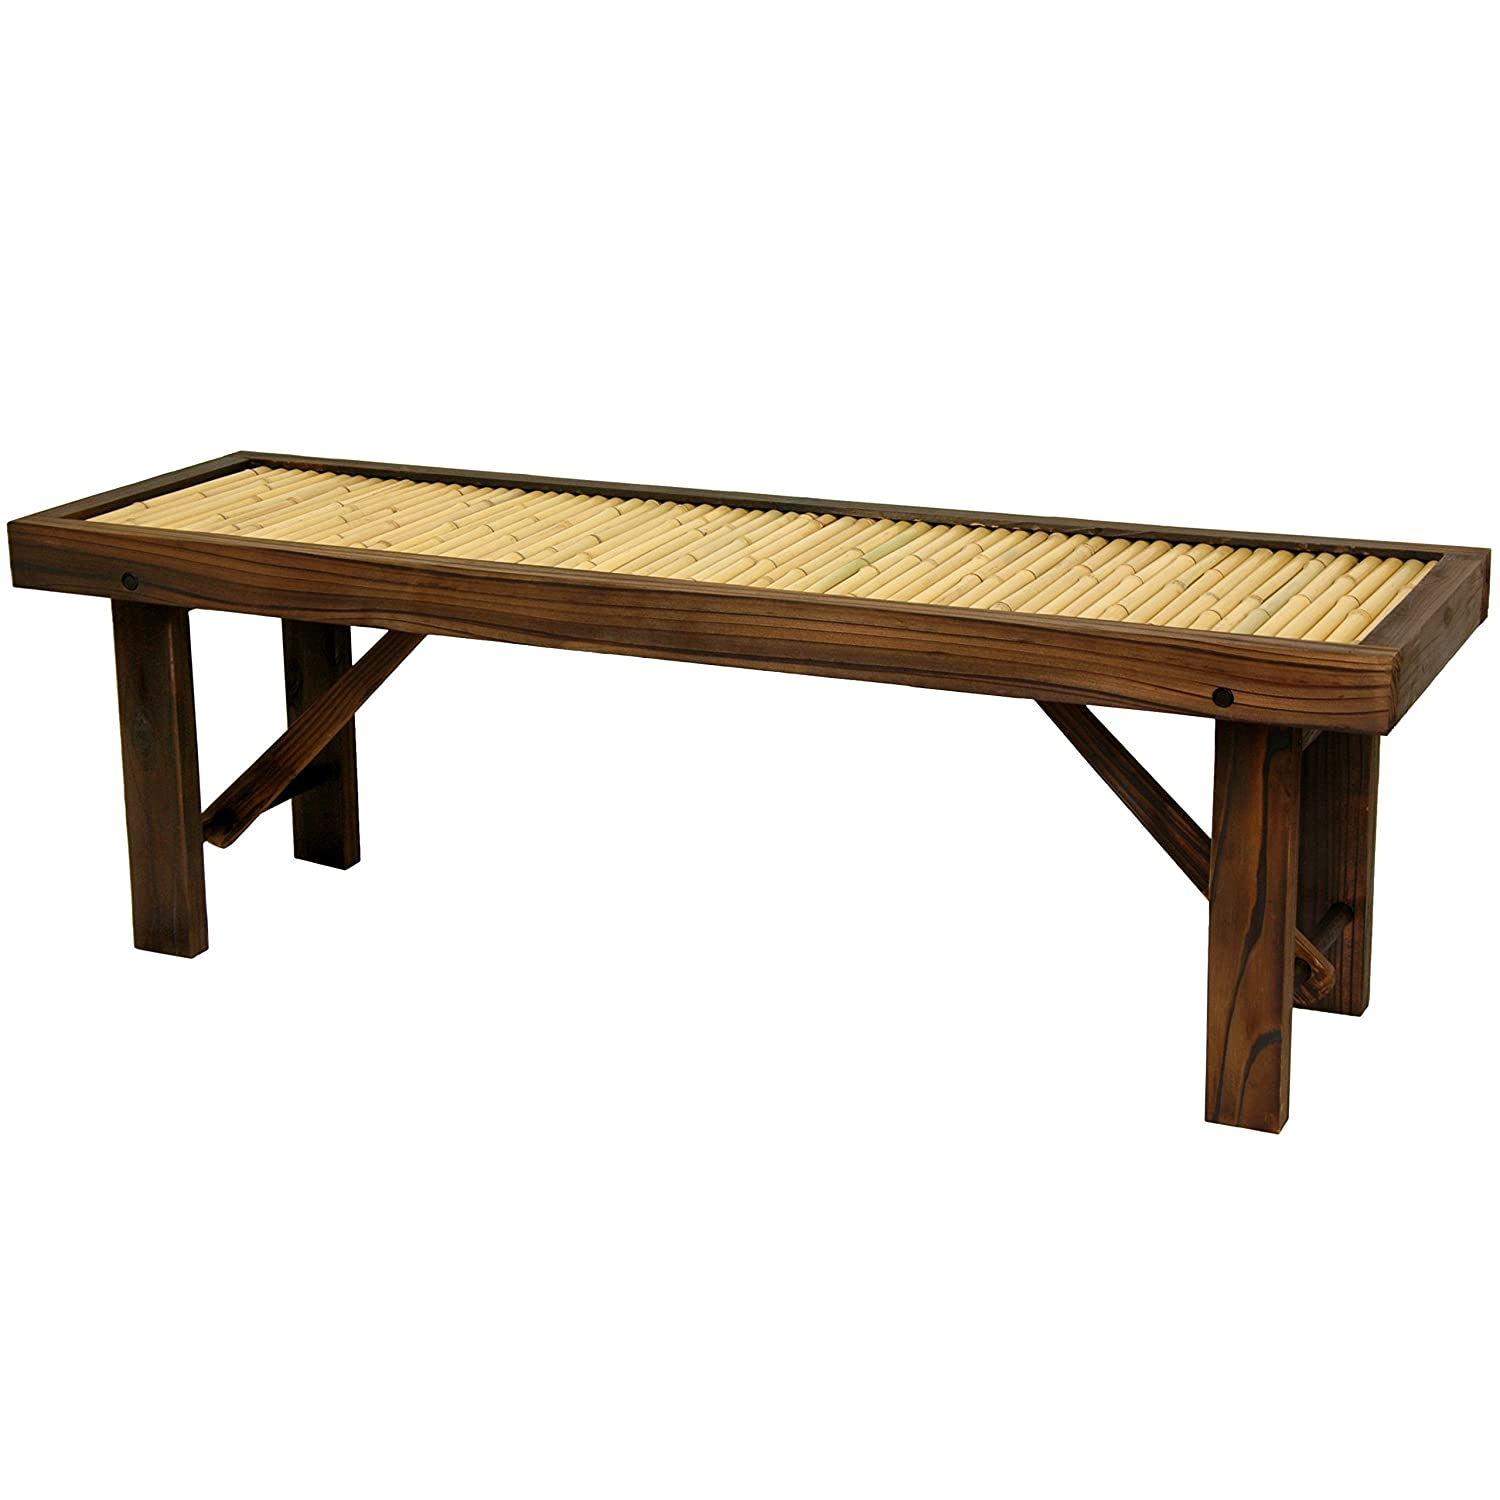 Amazon.com: Oriental Furniture Japanese Bamboo Bench w/ Wood Frame ...